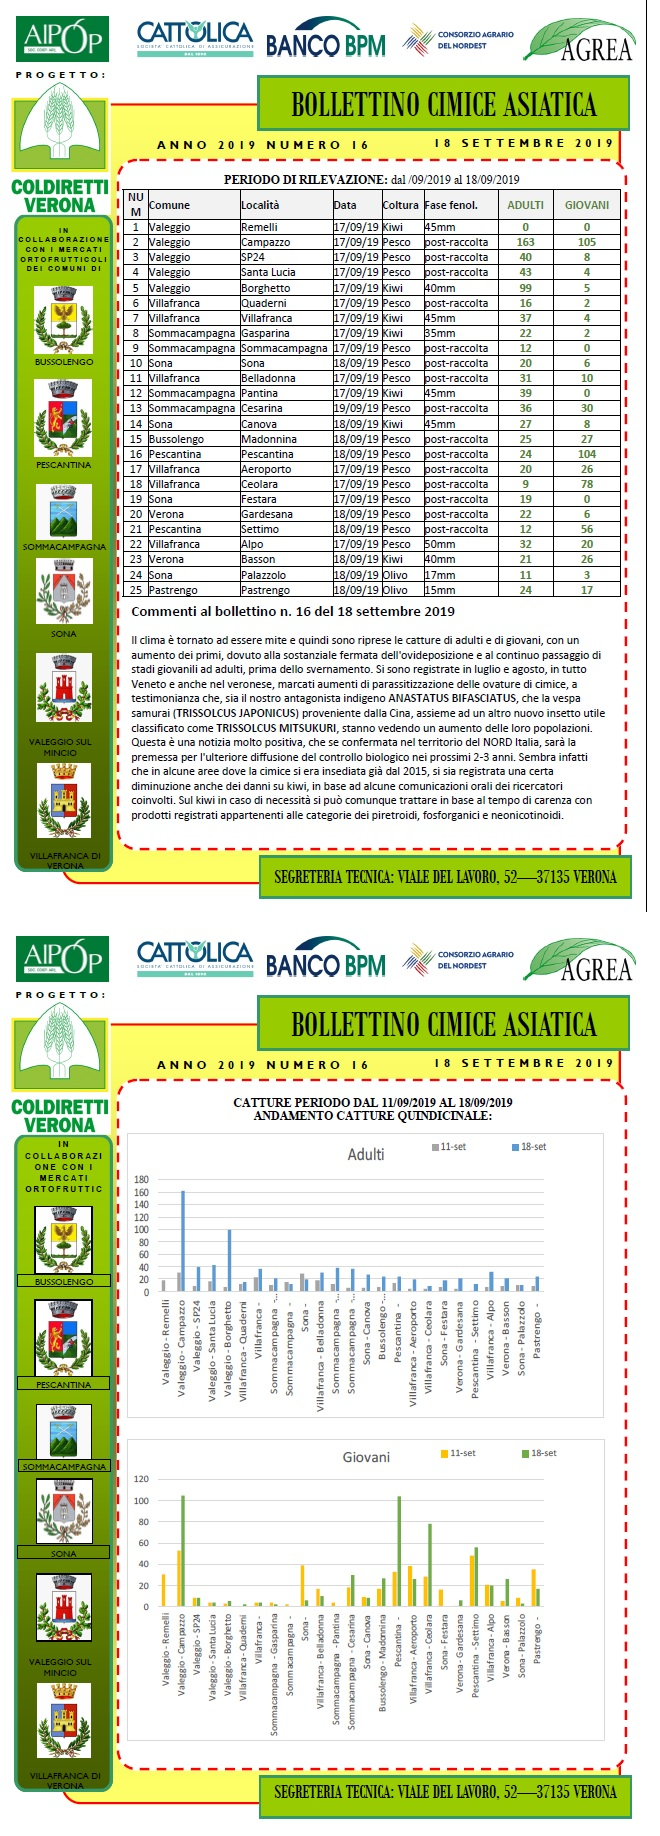 BOLLETTINO CIMICE ASIATICA N. 16 DEL 18/09/2019